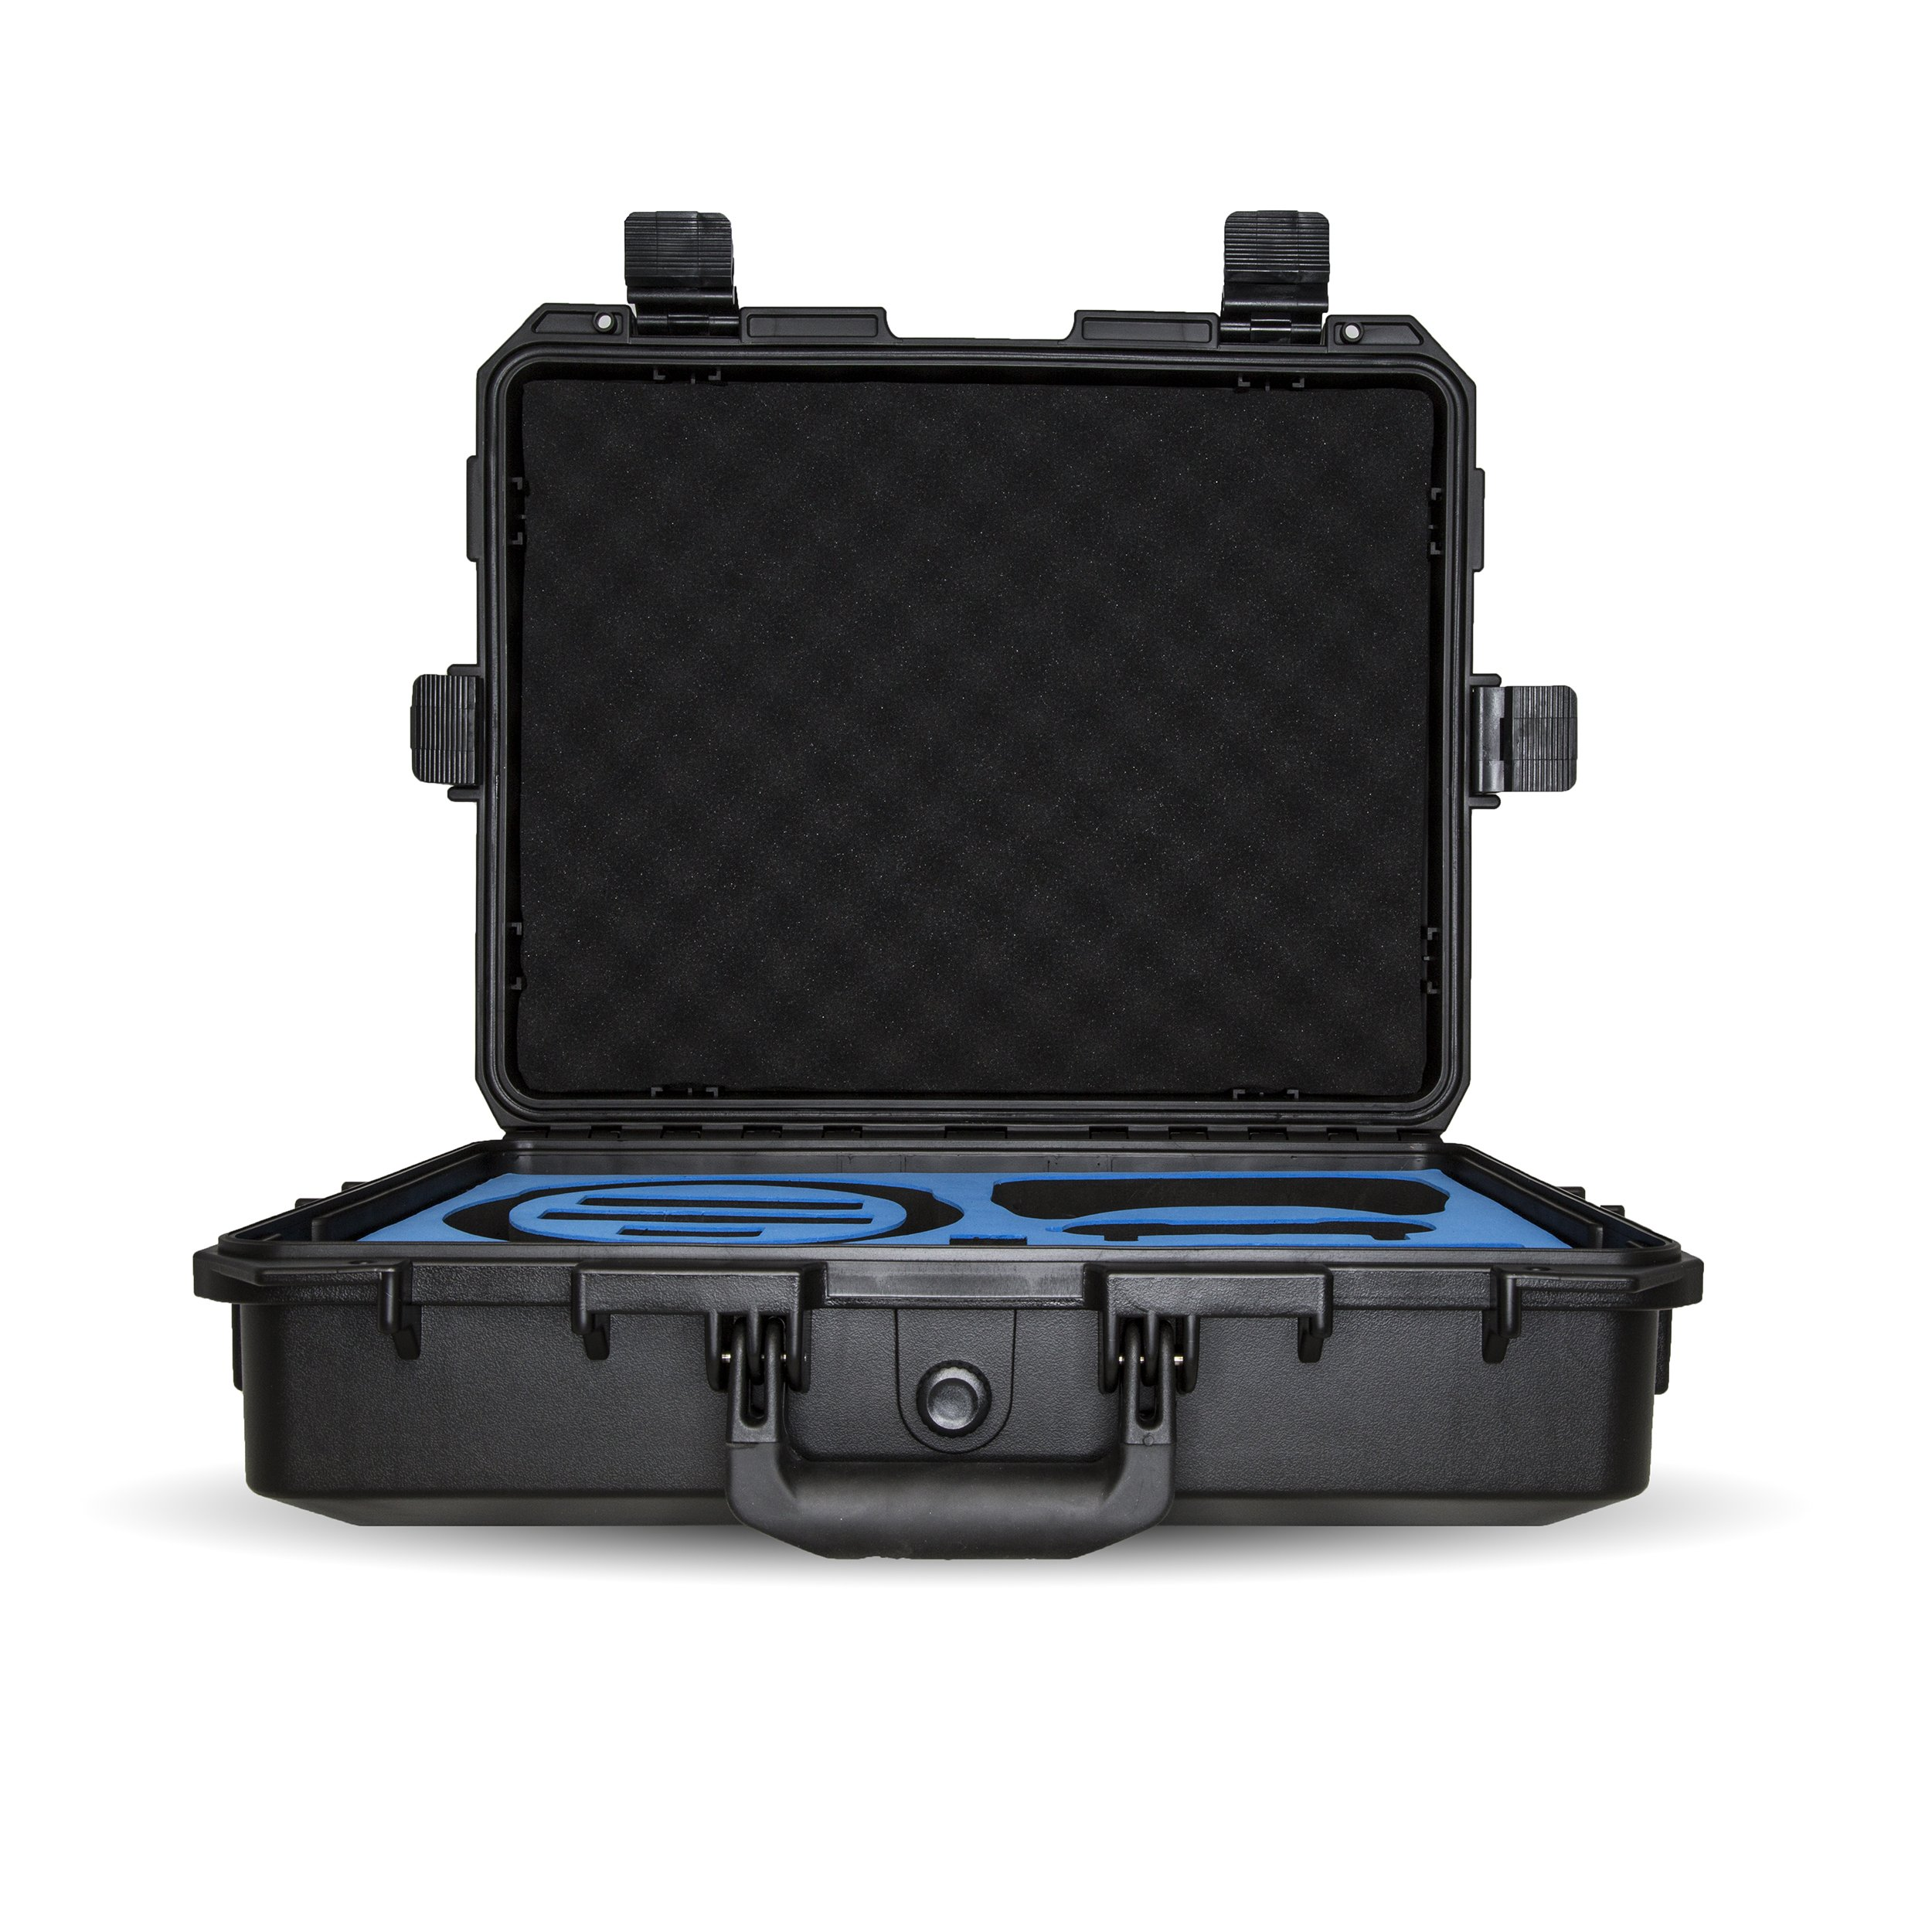 Ultimaxx Water Proof Rugged Compact Storage Hard Case for DJI FPV VR Goggles and DJI Mavic Air + Fits Extra Accessories by Ultimaxx (Image #4)